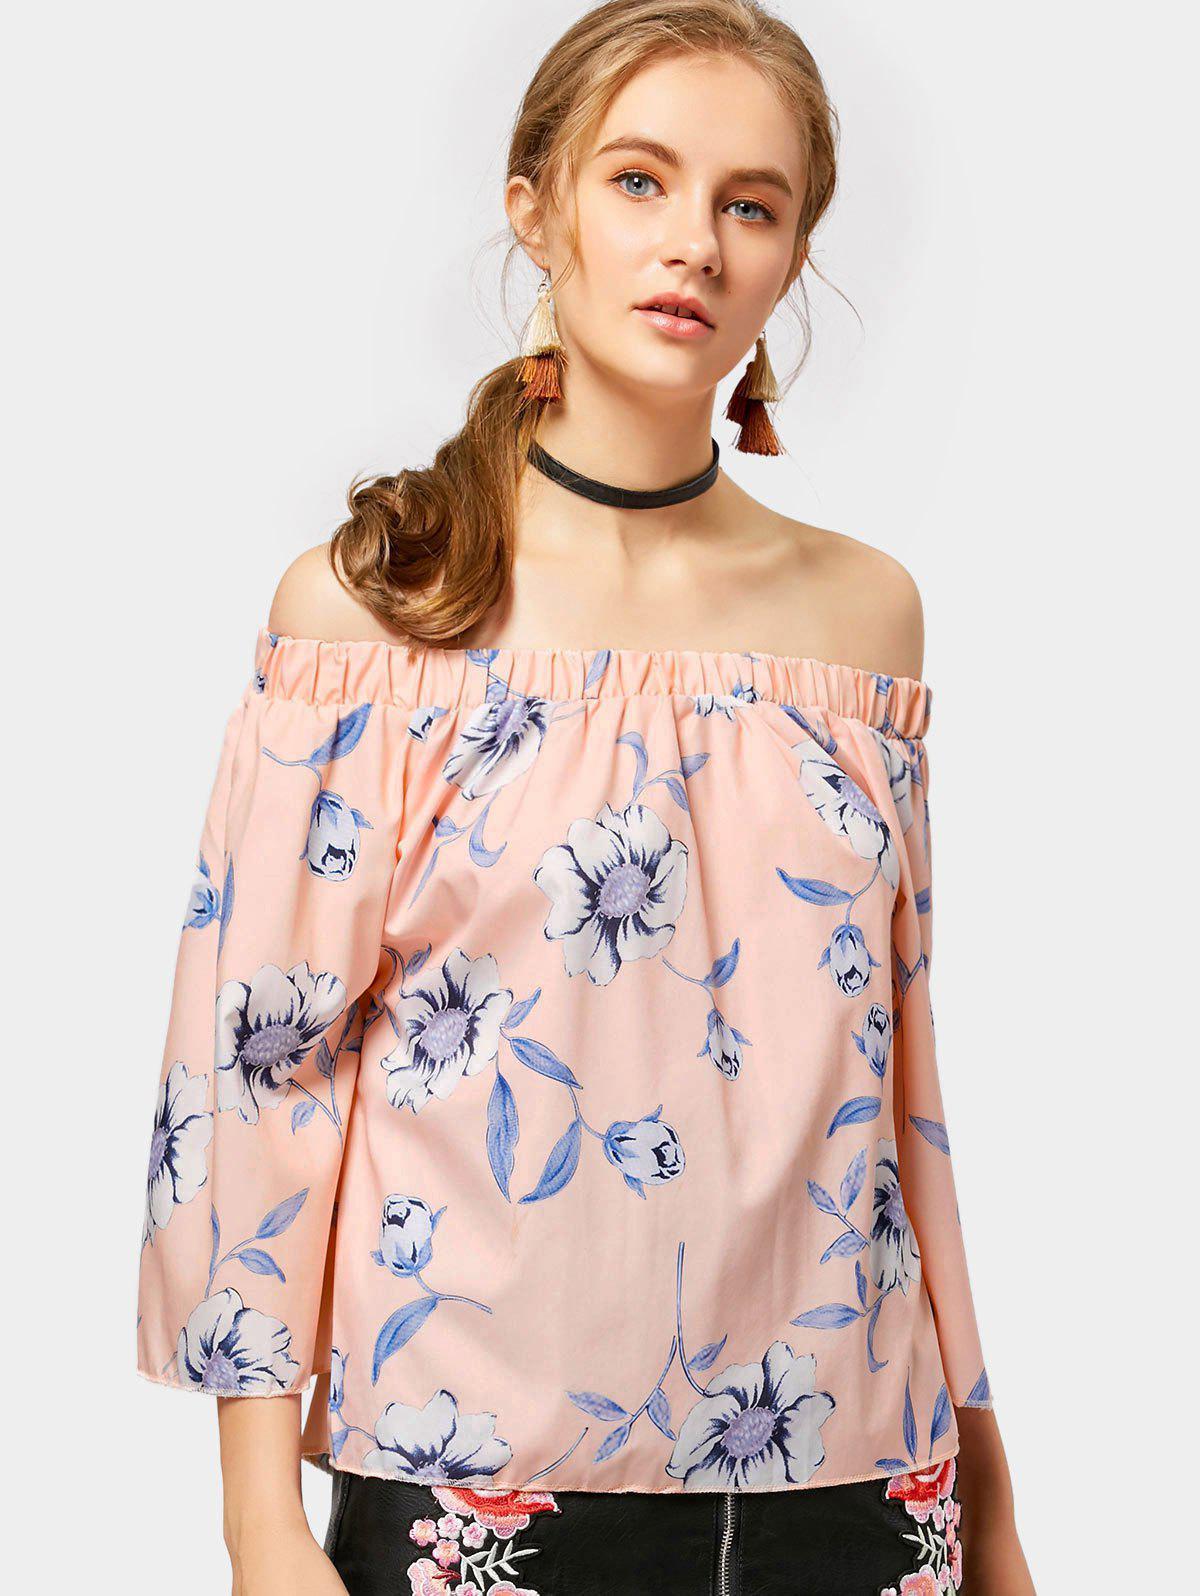 Off The Shoulder Back Slit Floral Blouse 226872807